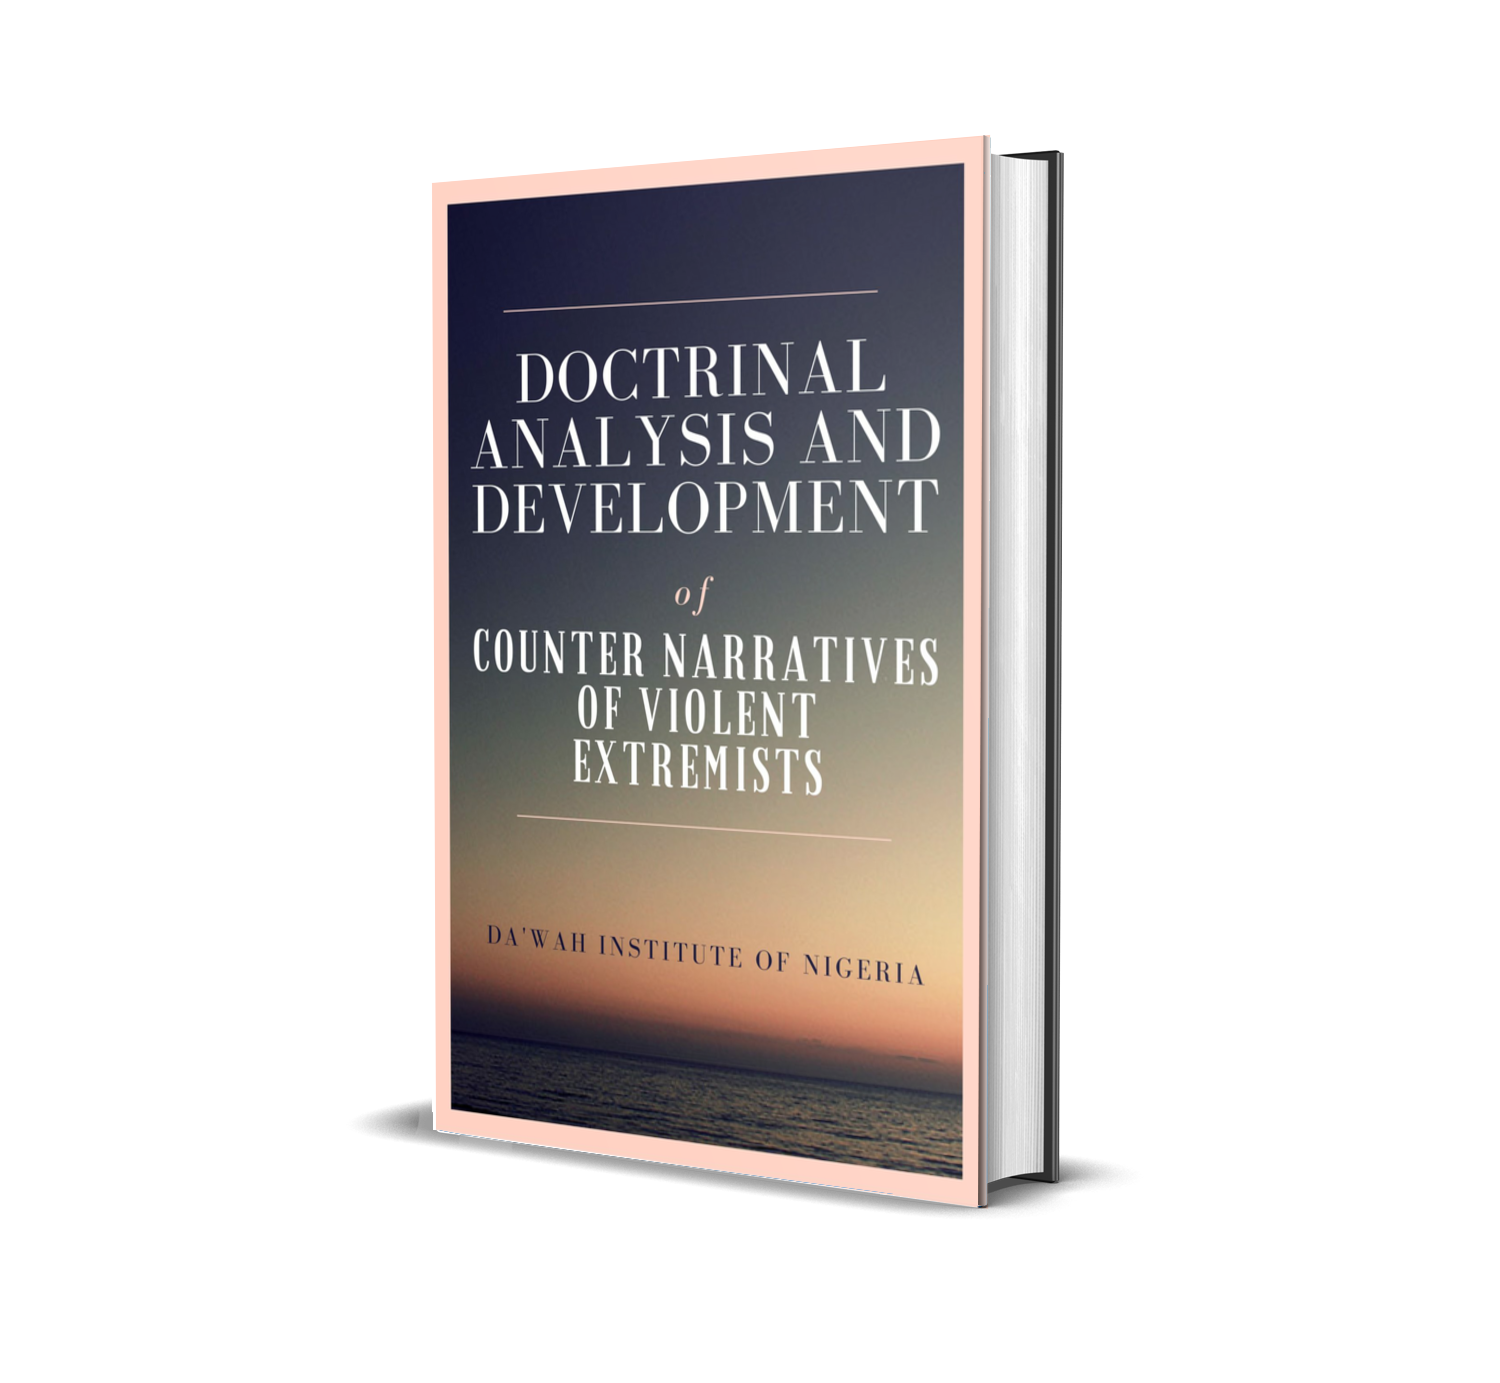 https://dawahinstitute.org/wp-content/uploads/Doctrinal-analysis-2d.png